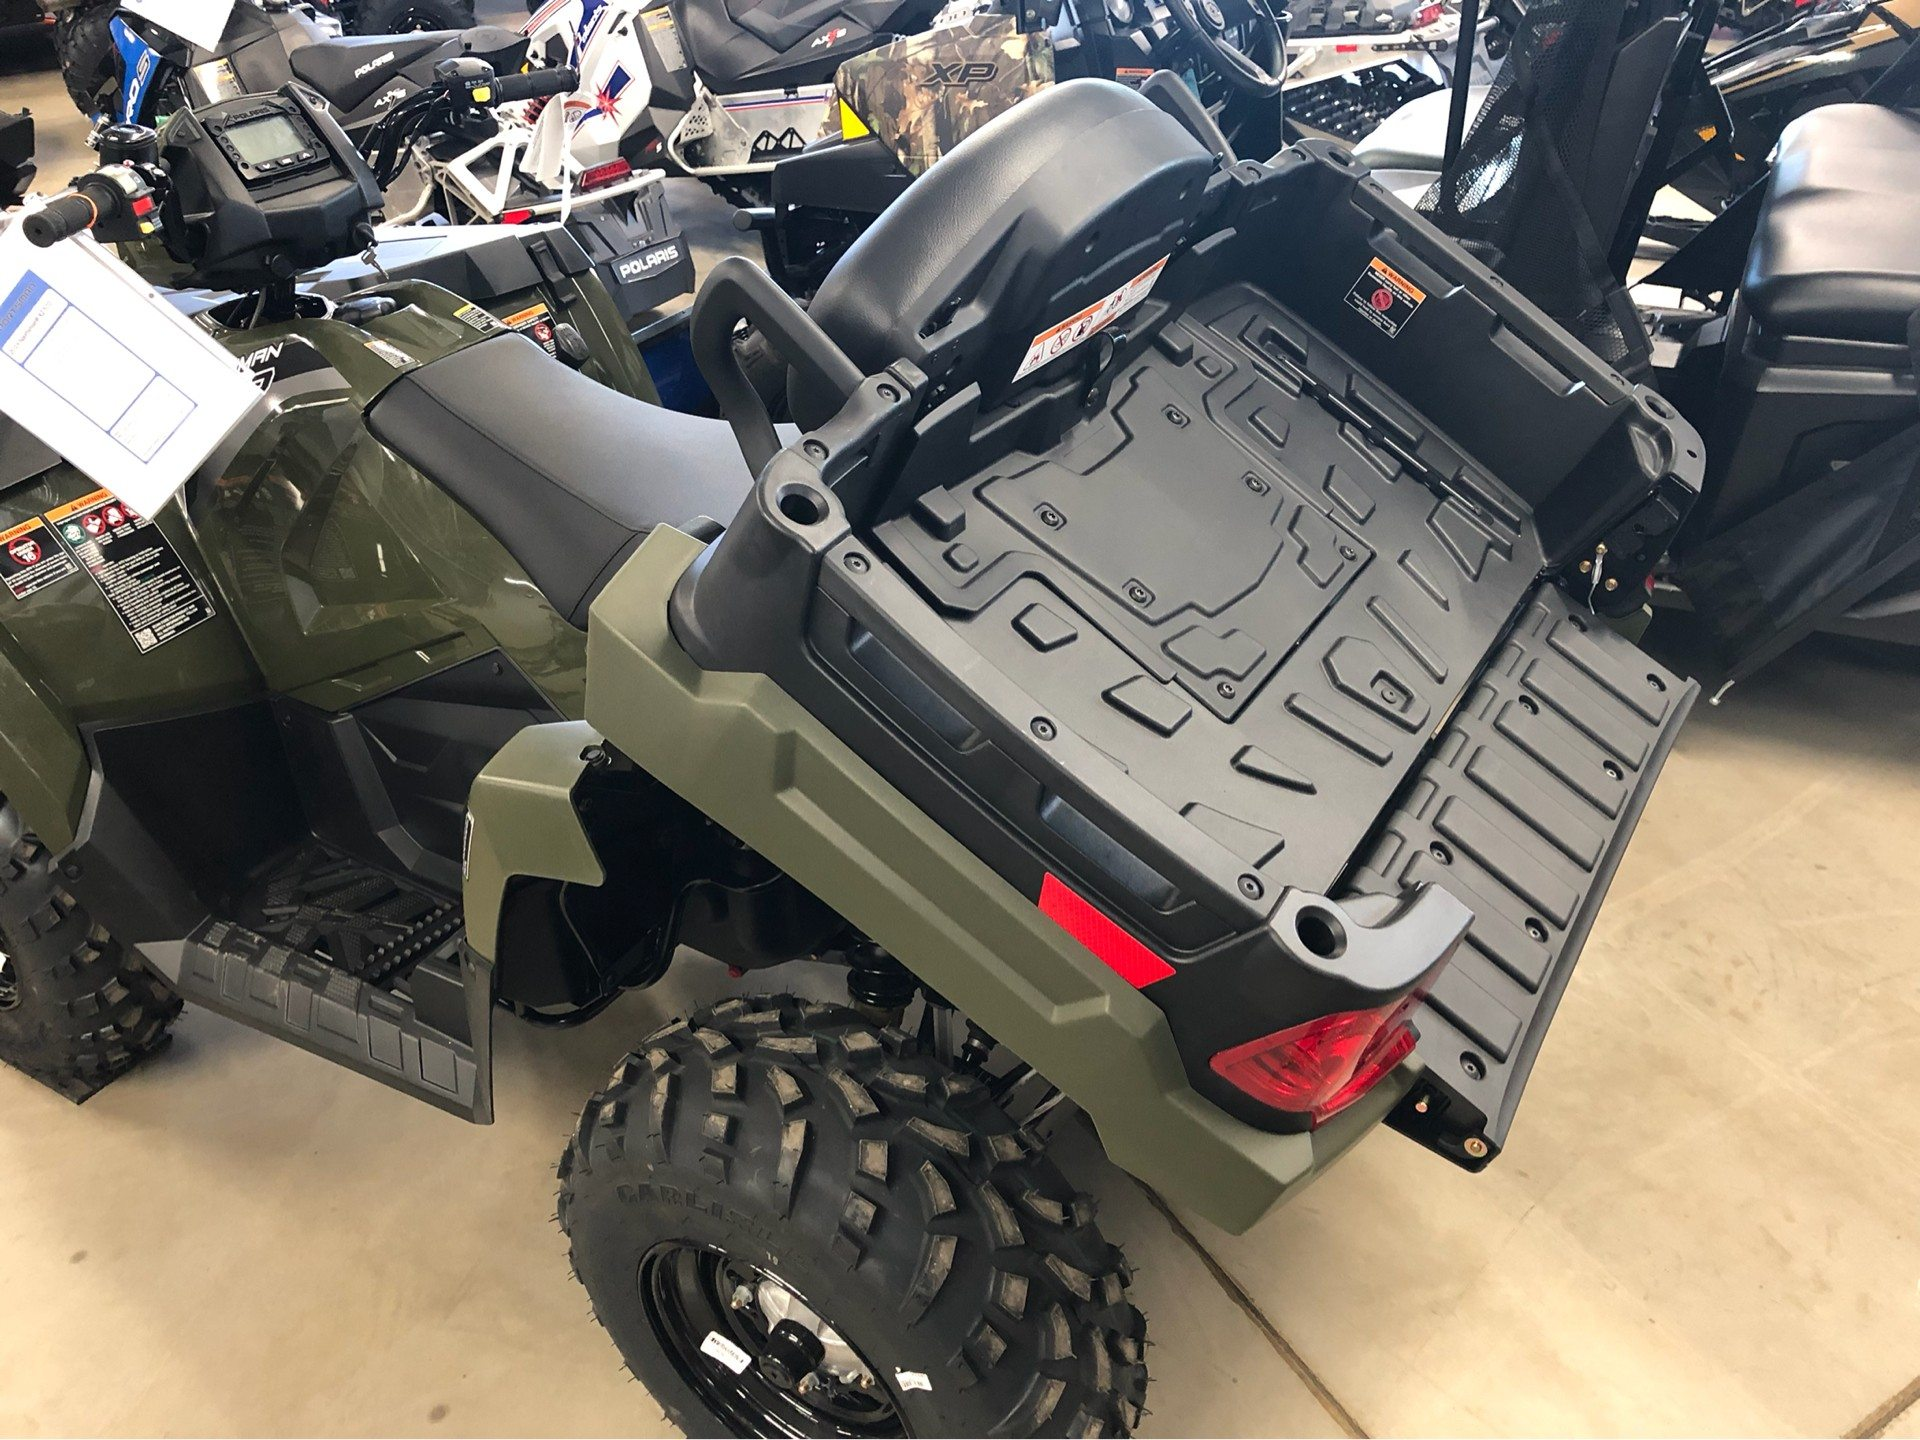 2019 Polaris Sportsman X2 570 in Appleton, Wisconsin - Photo 4